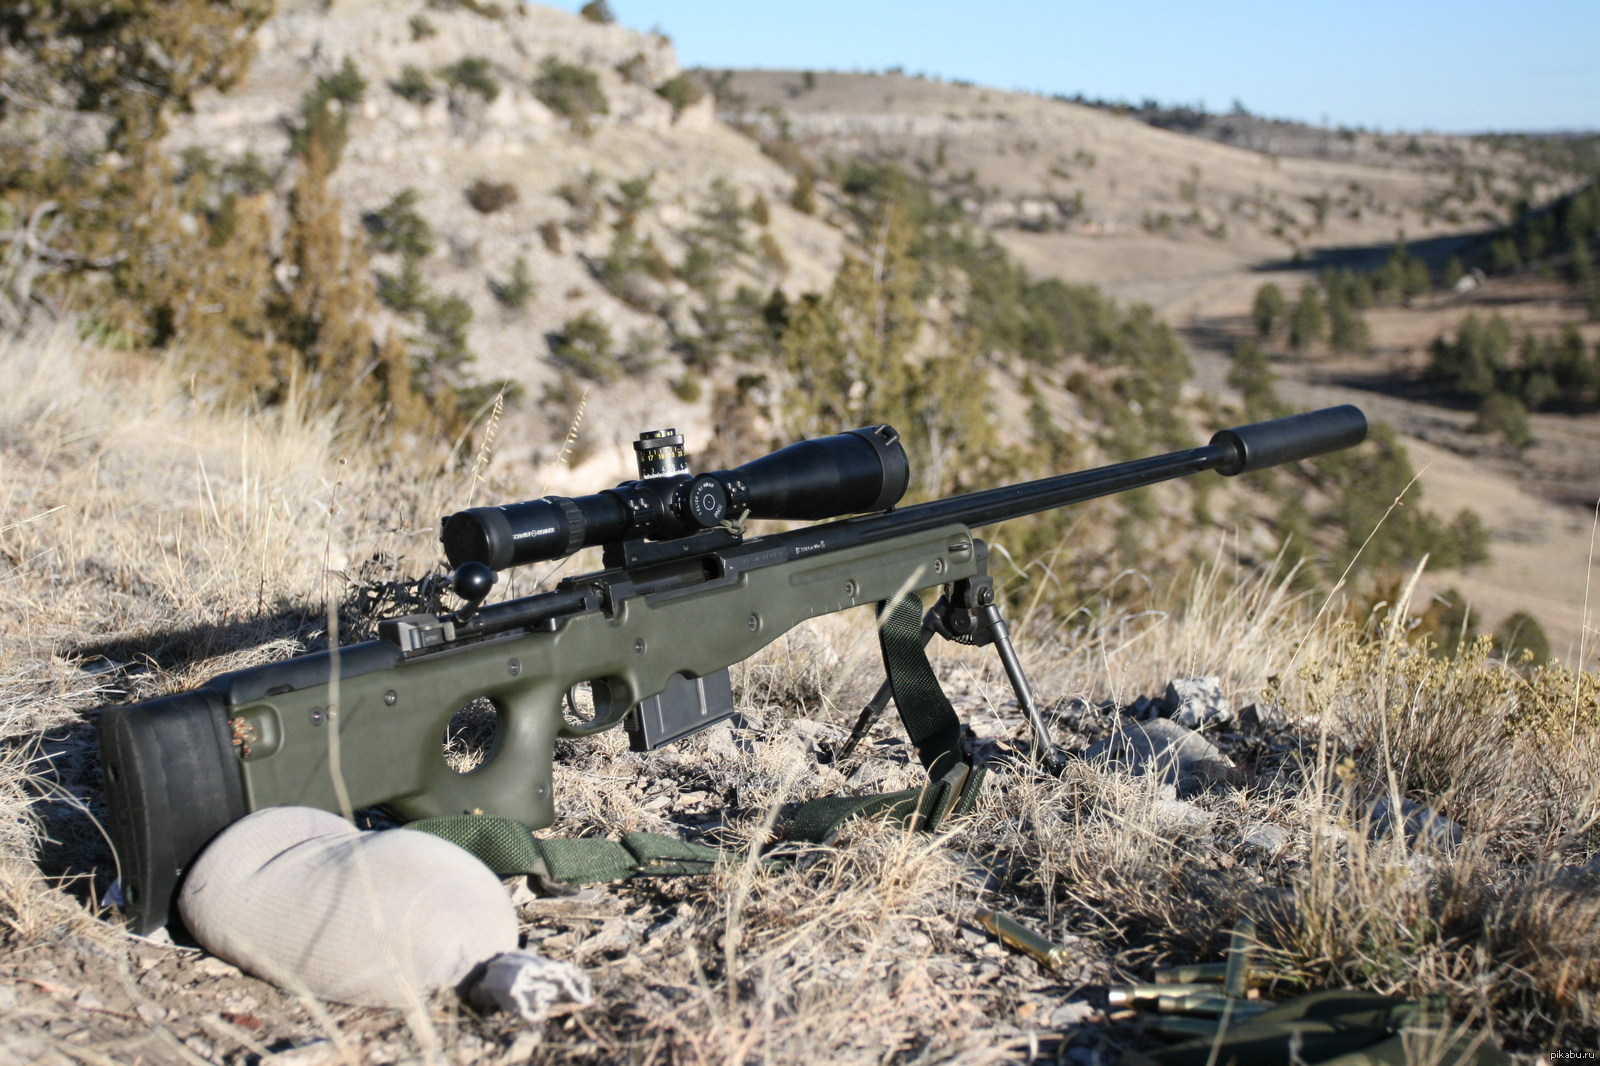 armys long serving sniper rifle - HD1920×1280